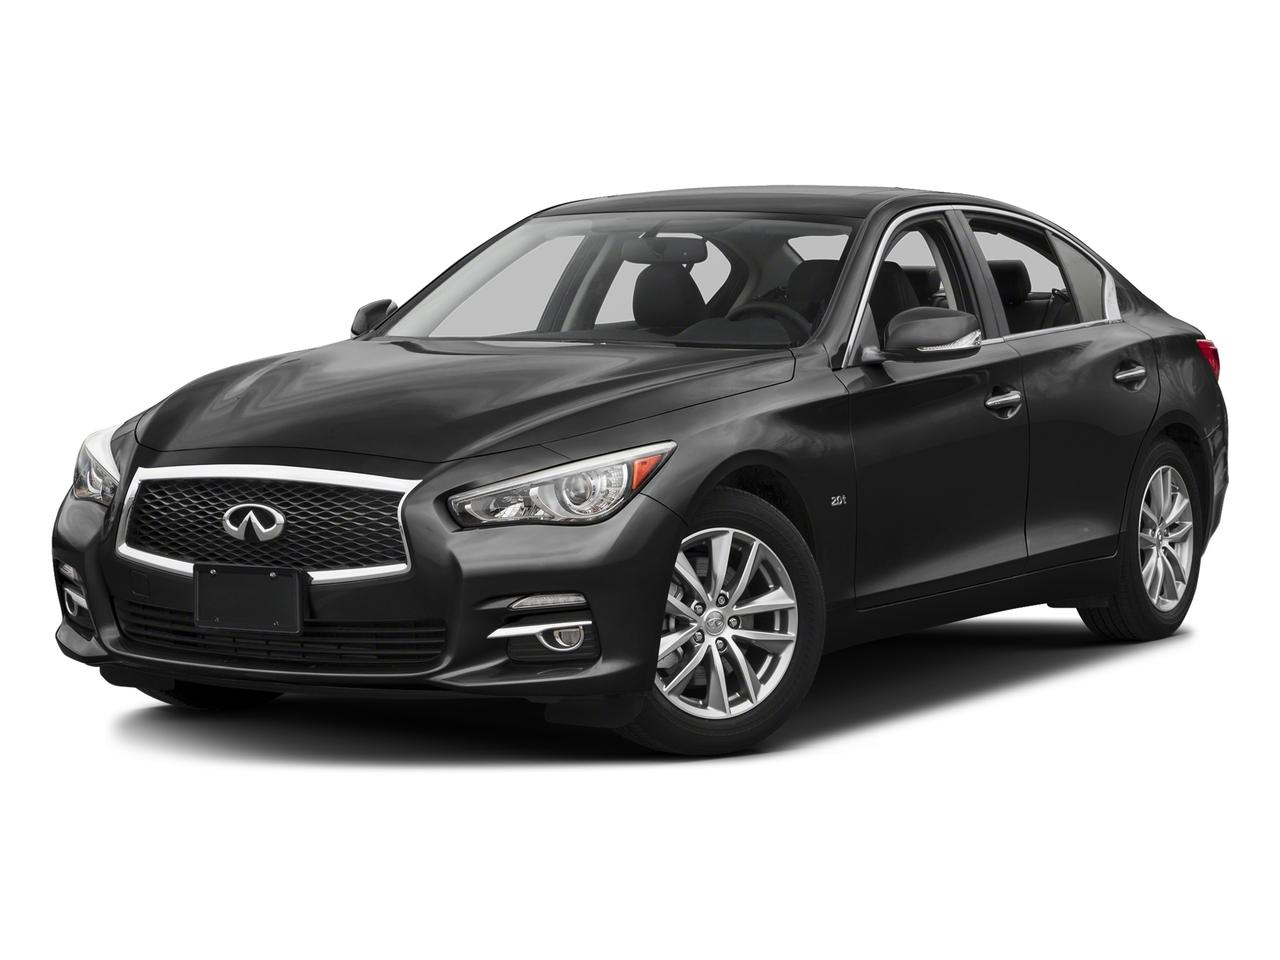 2017 INFINITI Q50 Vehicle Photo in Houston, TX 77054